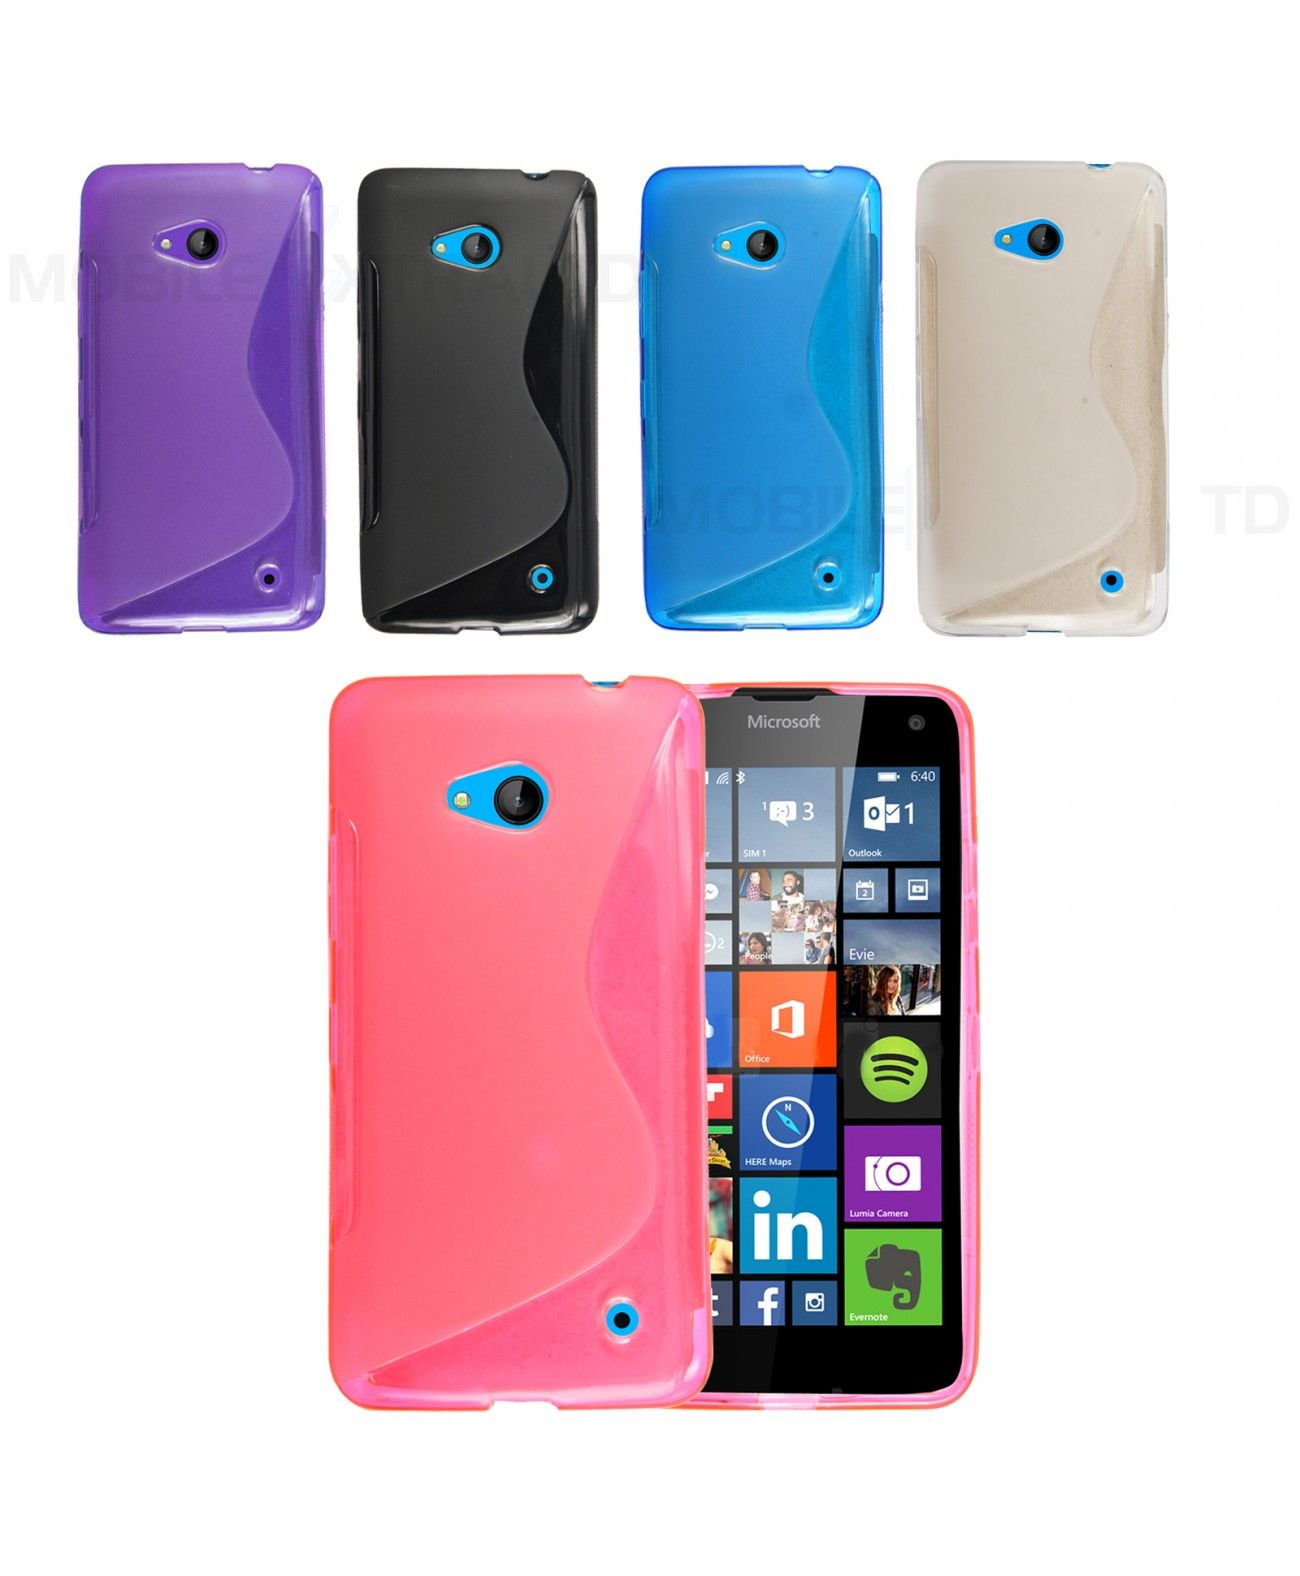 NEW ULTRA THIN SOFT BACK SKIN FITTED S-LINE WAVE TPU GEL CASE COVER FOR MICROSOFT LUMIA 550....66245339872583